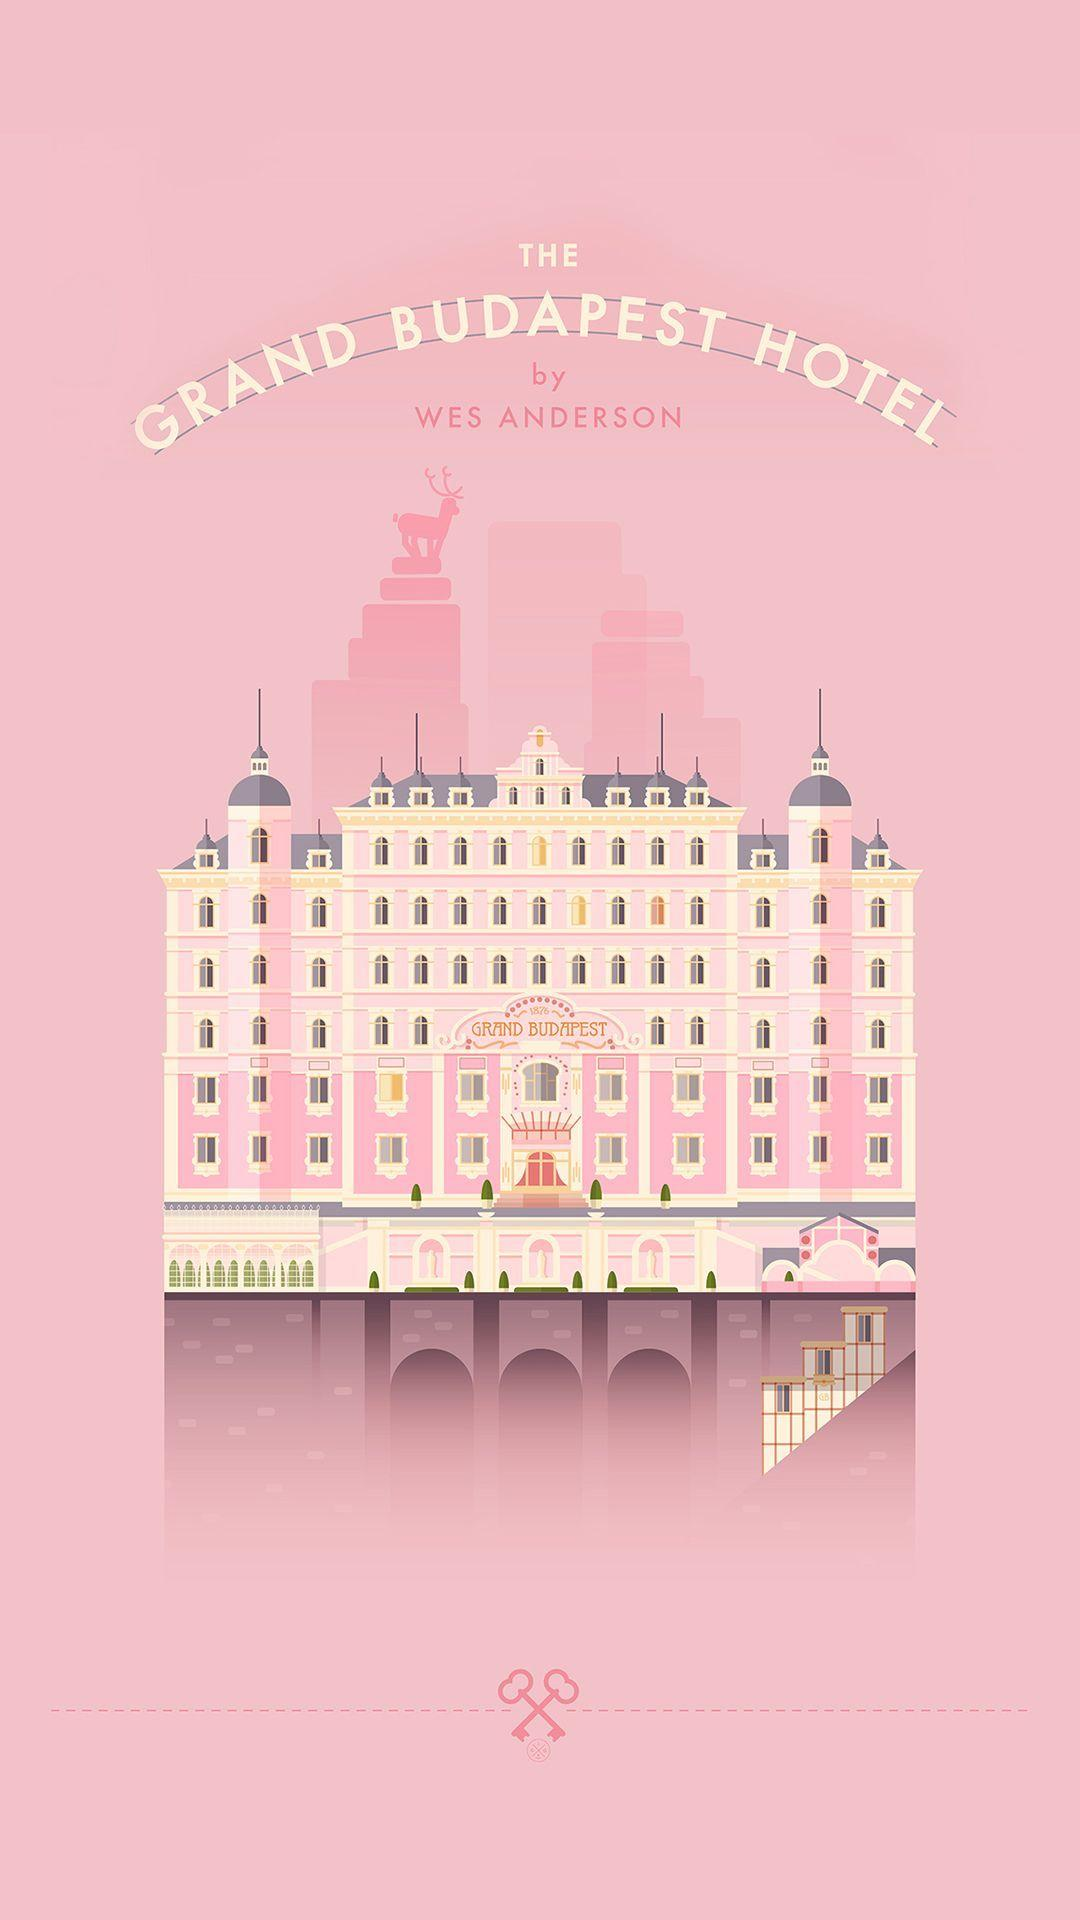 The Grand Budapest Hotel Wallpapers Wallpaper Cave